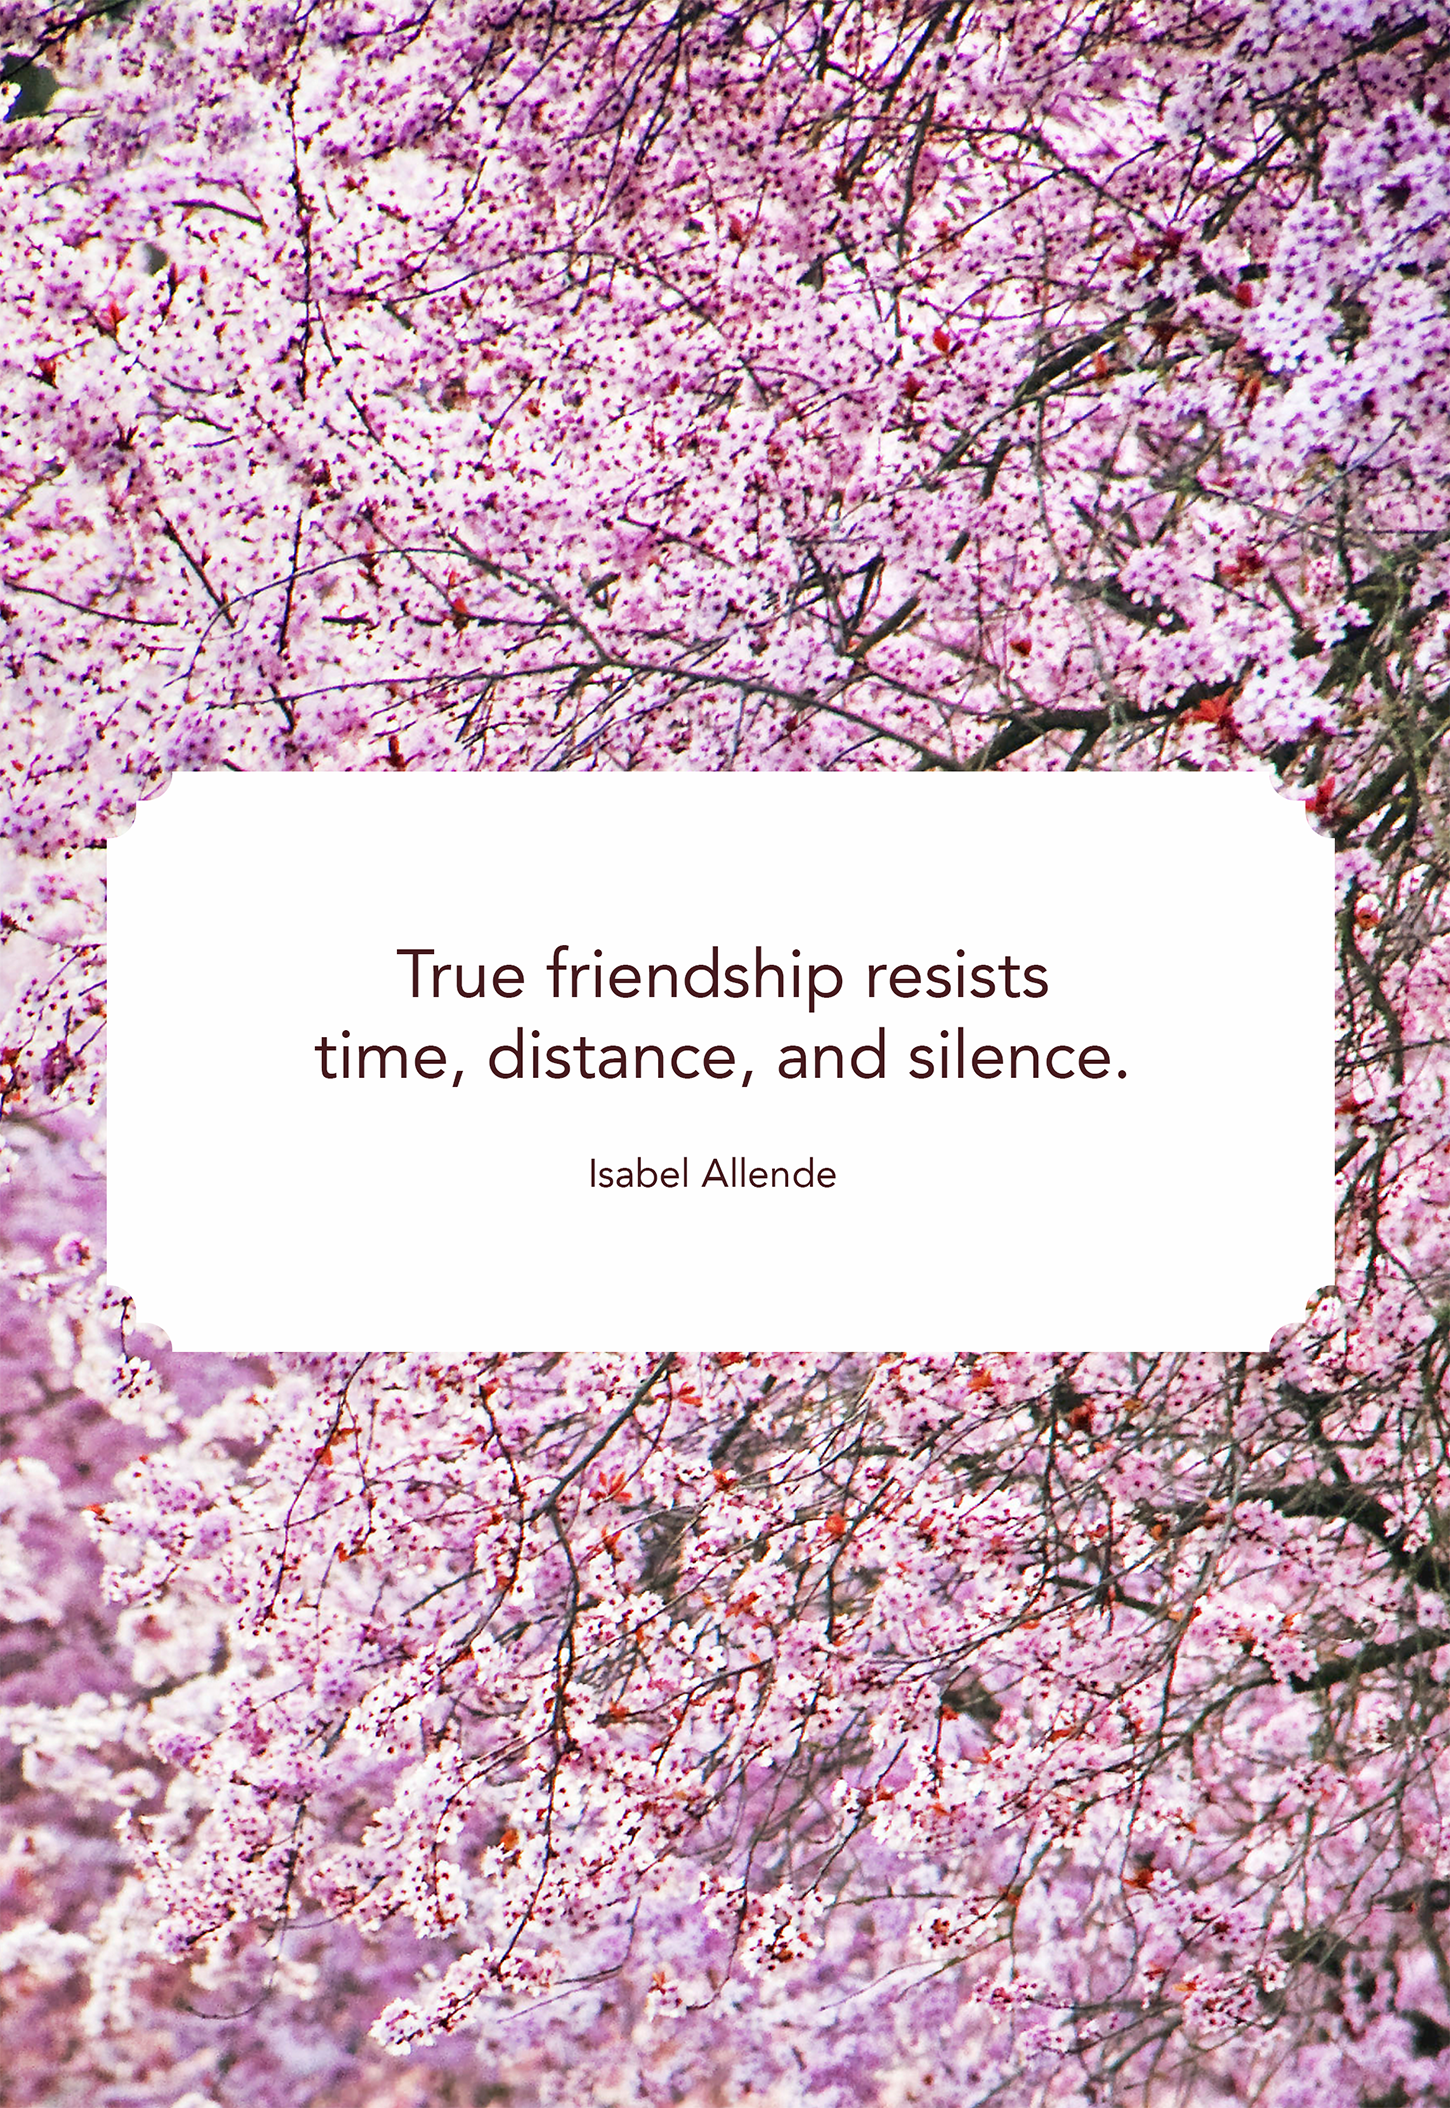 Best Friend Quotes 25 Cute Best Friend Quotes   Short Quotes About True Friends Best Friend Quotes